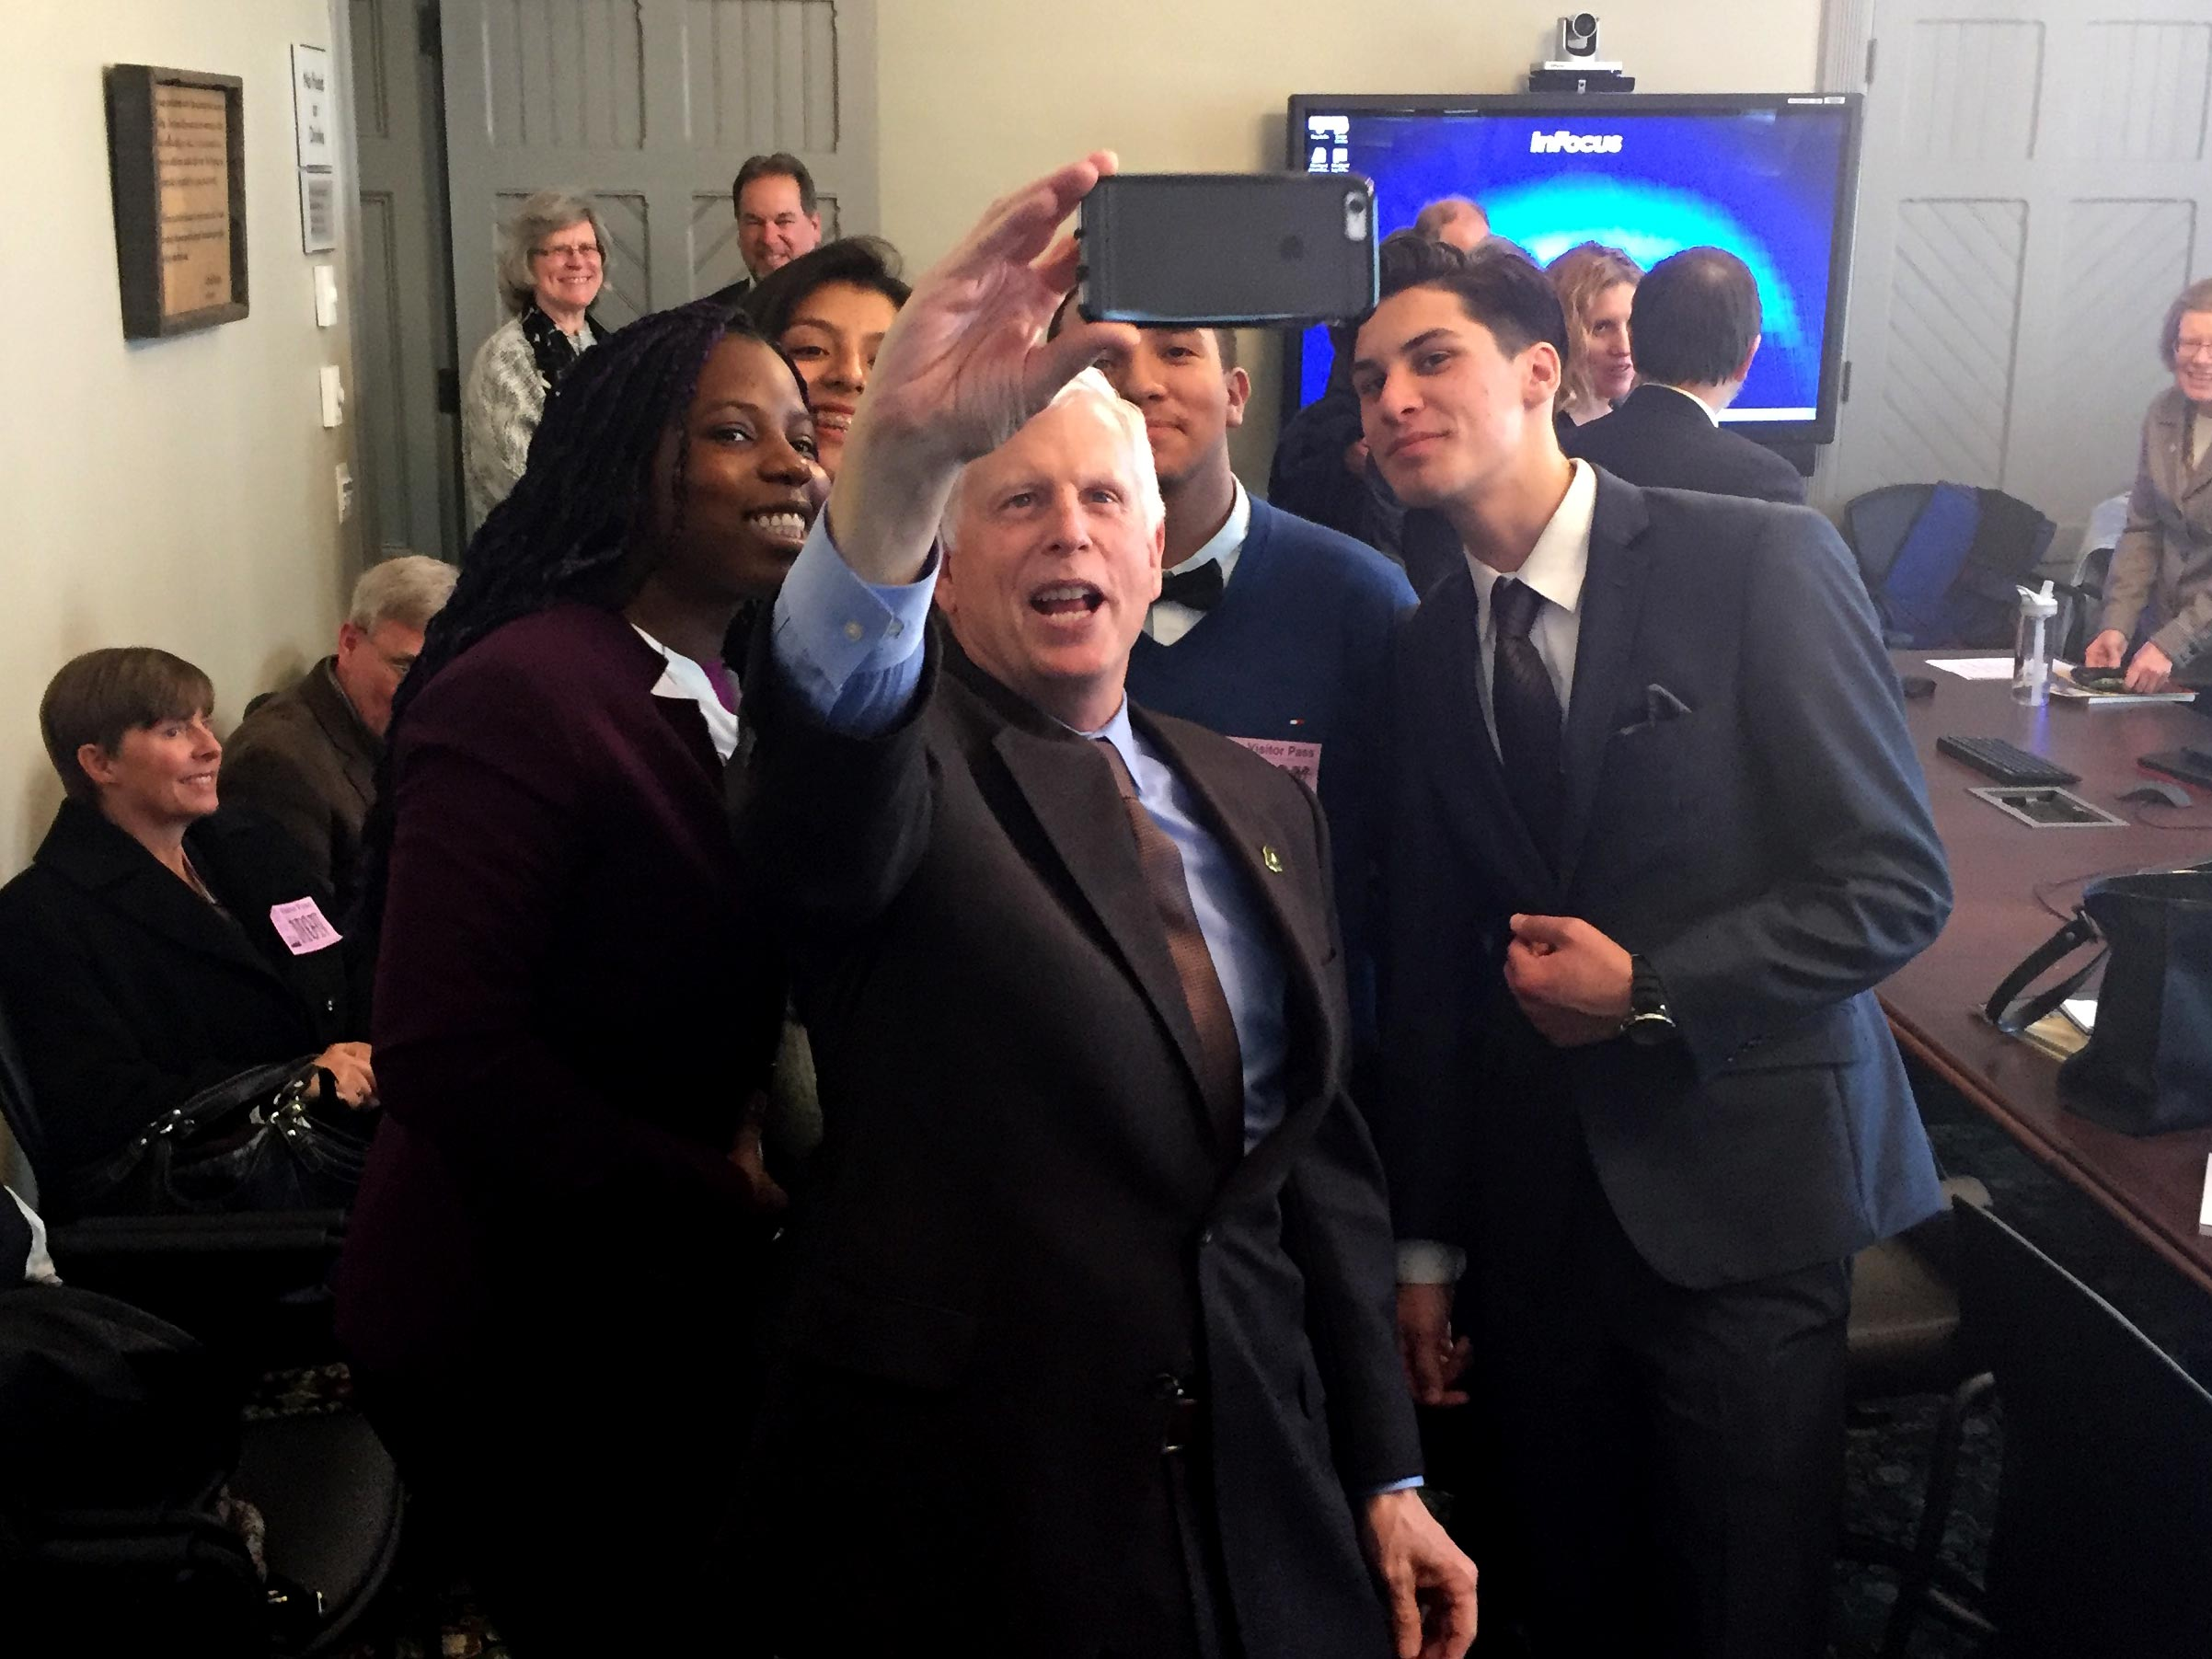 Chief Tidwell, leader of the U.S. Forest Service, takes a selfie with the group after hearing them speak about how important the PCT is to them.